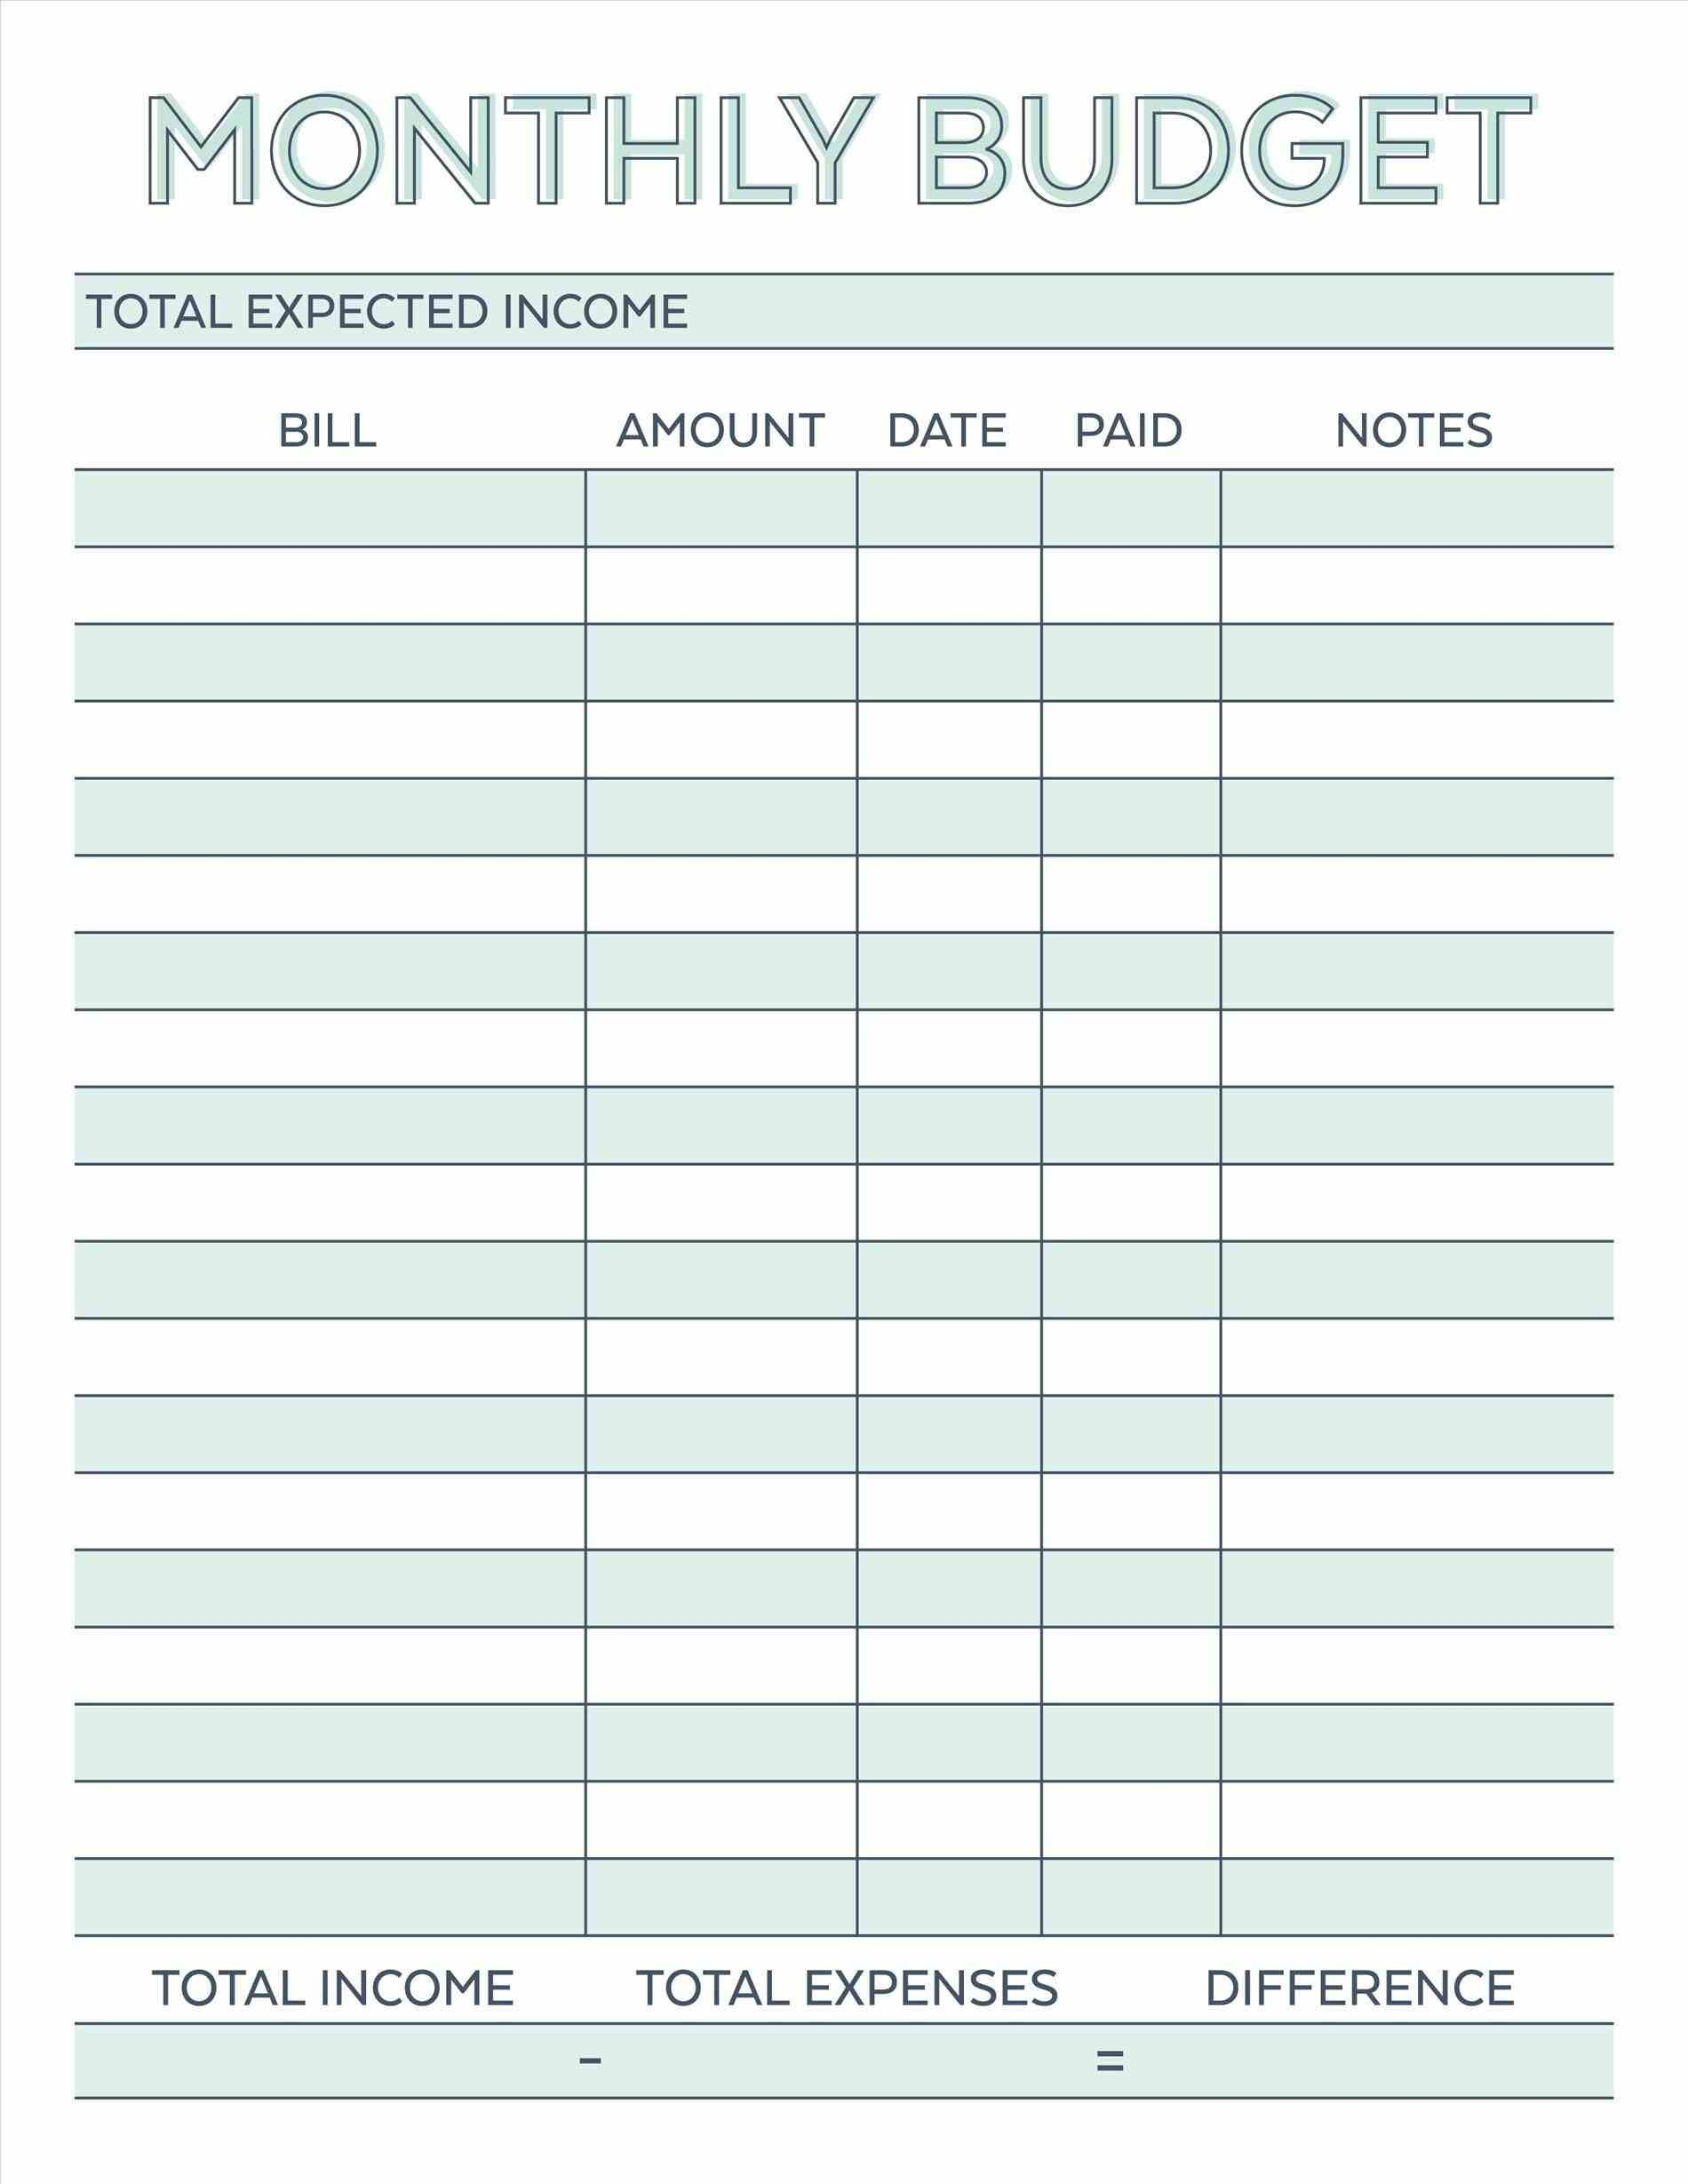 Budget Planner Planner Worksheet Monthly Bills Template Free | Free Printable Monthly Expenses Worksheet